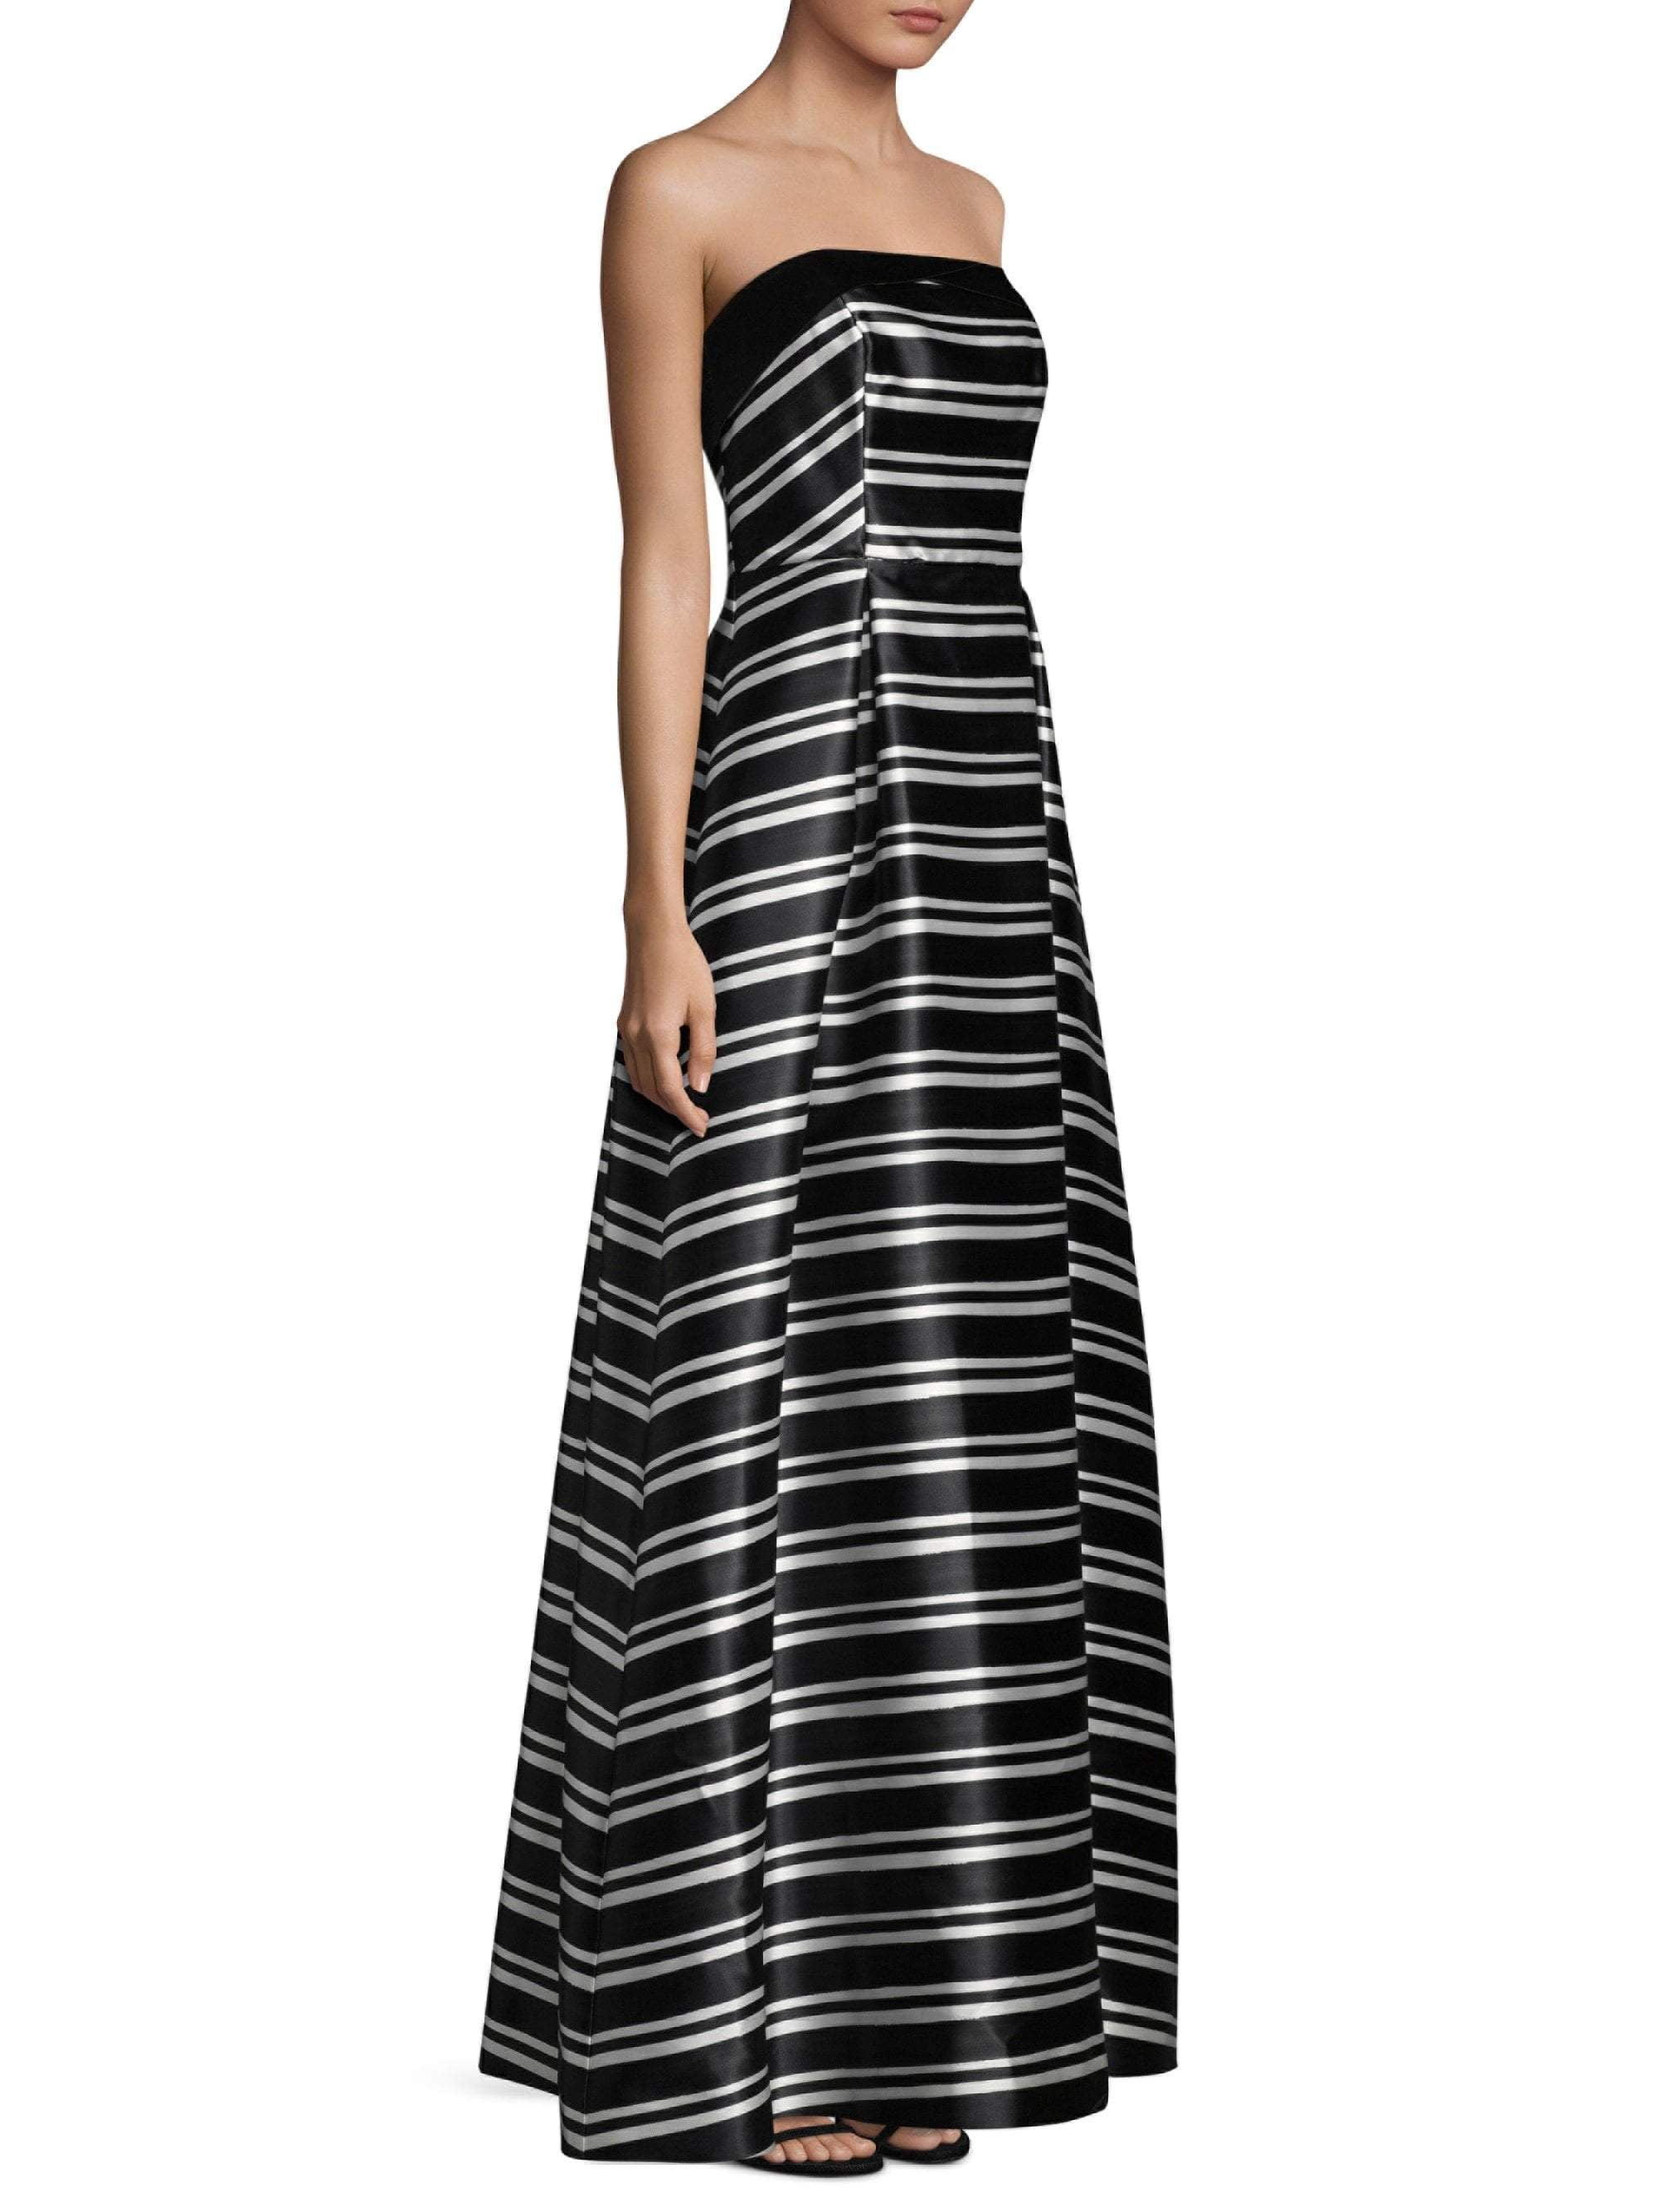 Laundry - 97R15202 Strapless Striped Mikado Ballgown In Black